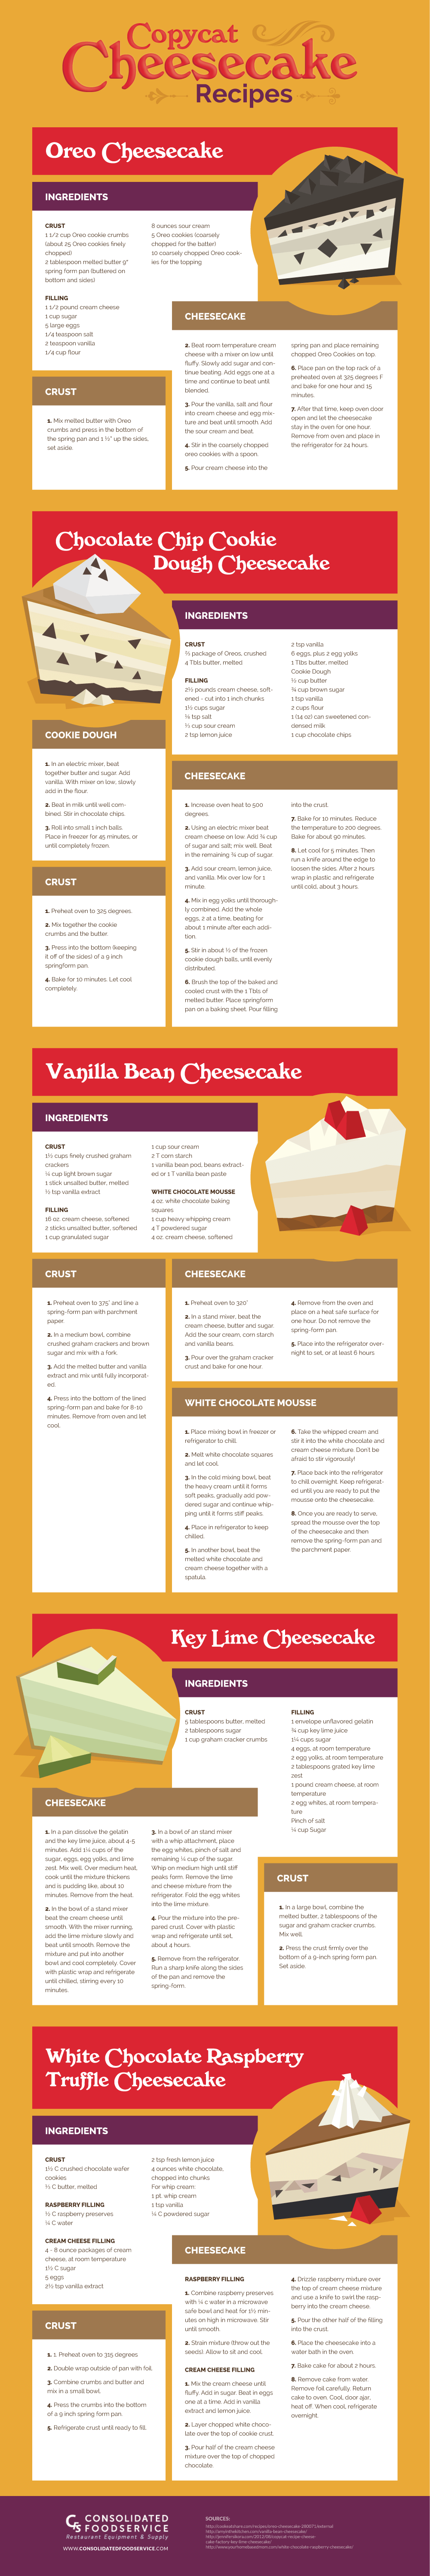 Cheesecake Factory Copycat Recipes Infographic